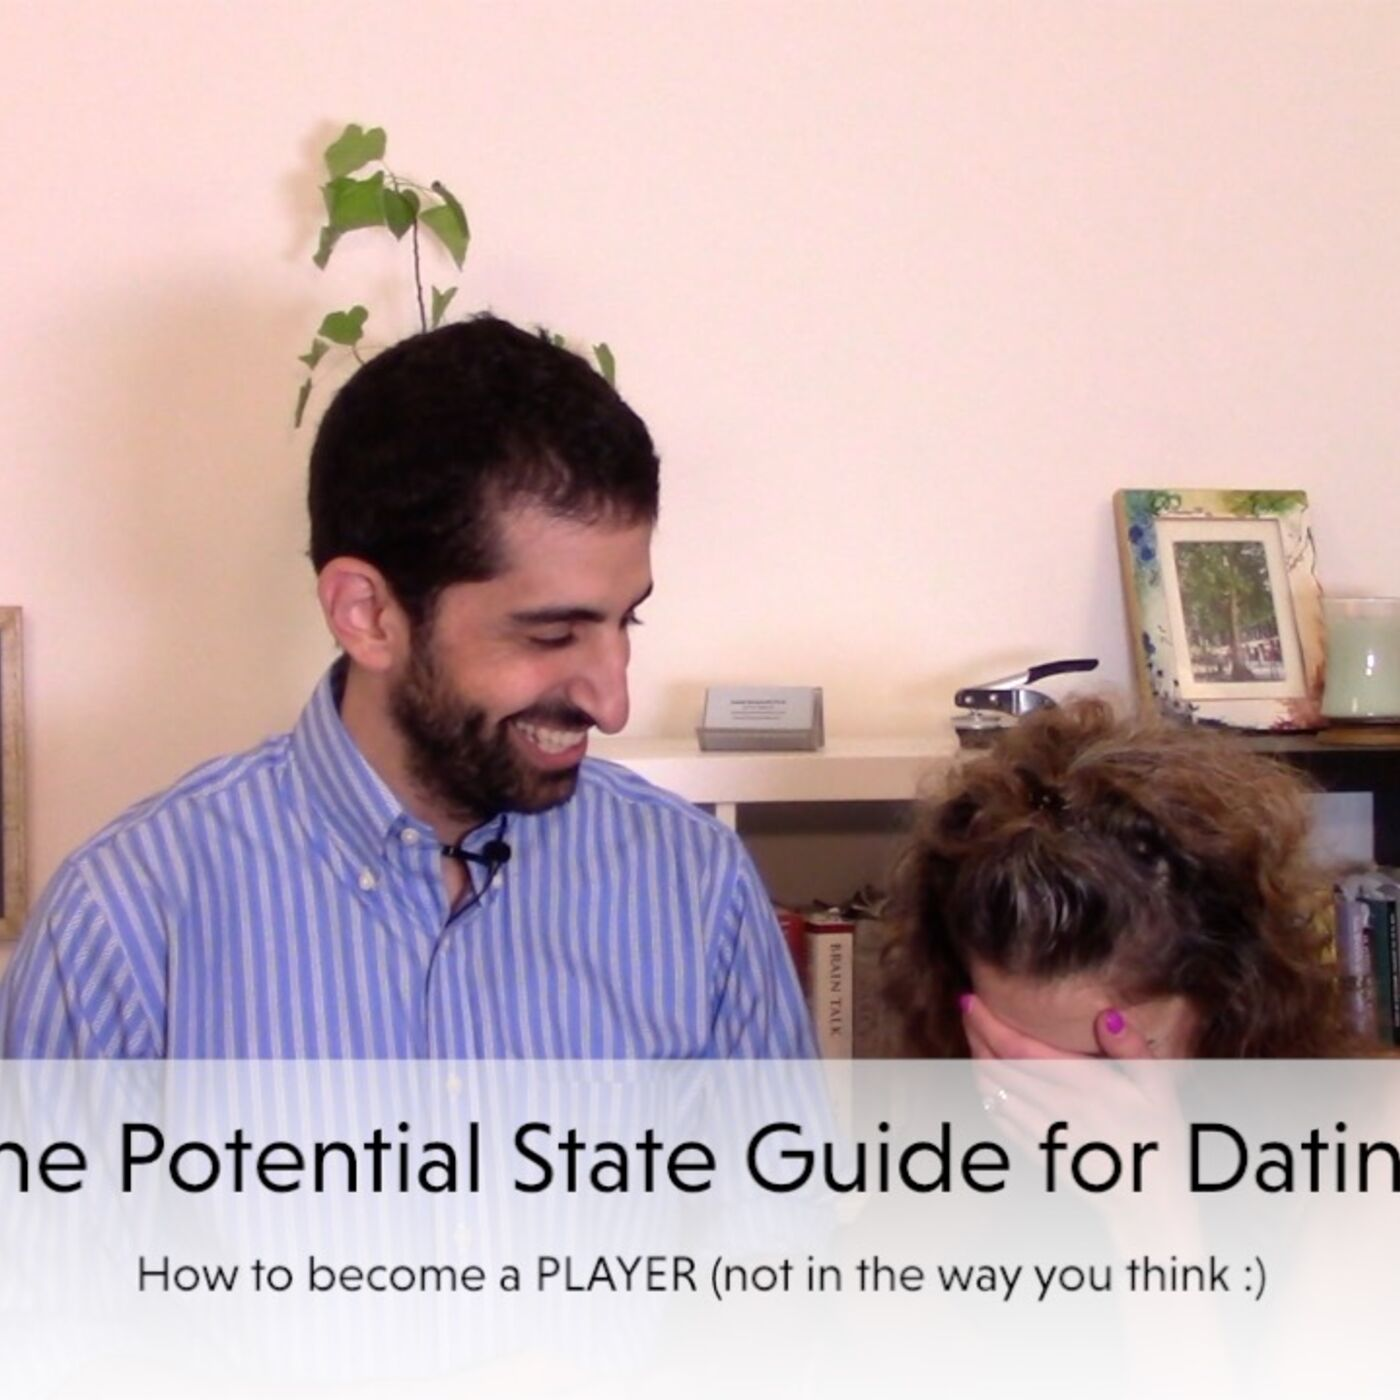 The Potential State's Top Ten Tips for Dating